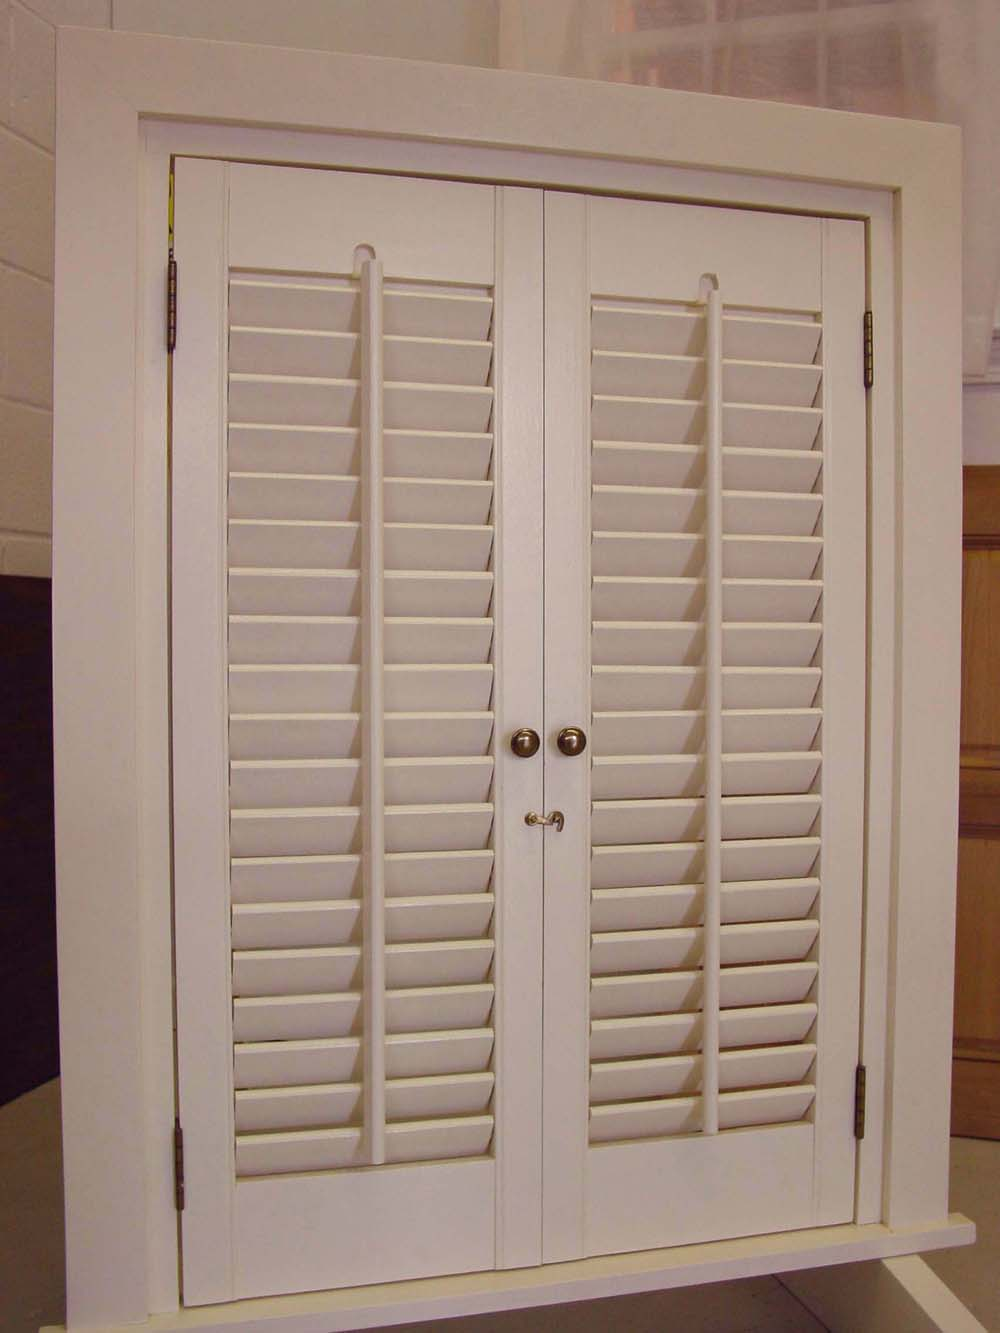 vertical mullion on interior white functional plantation style shutters